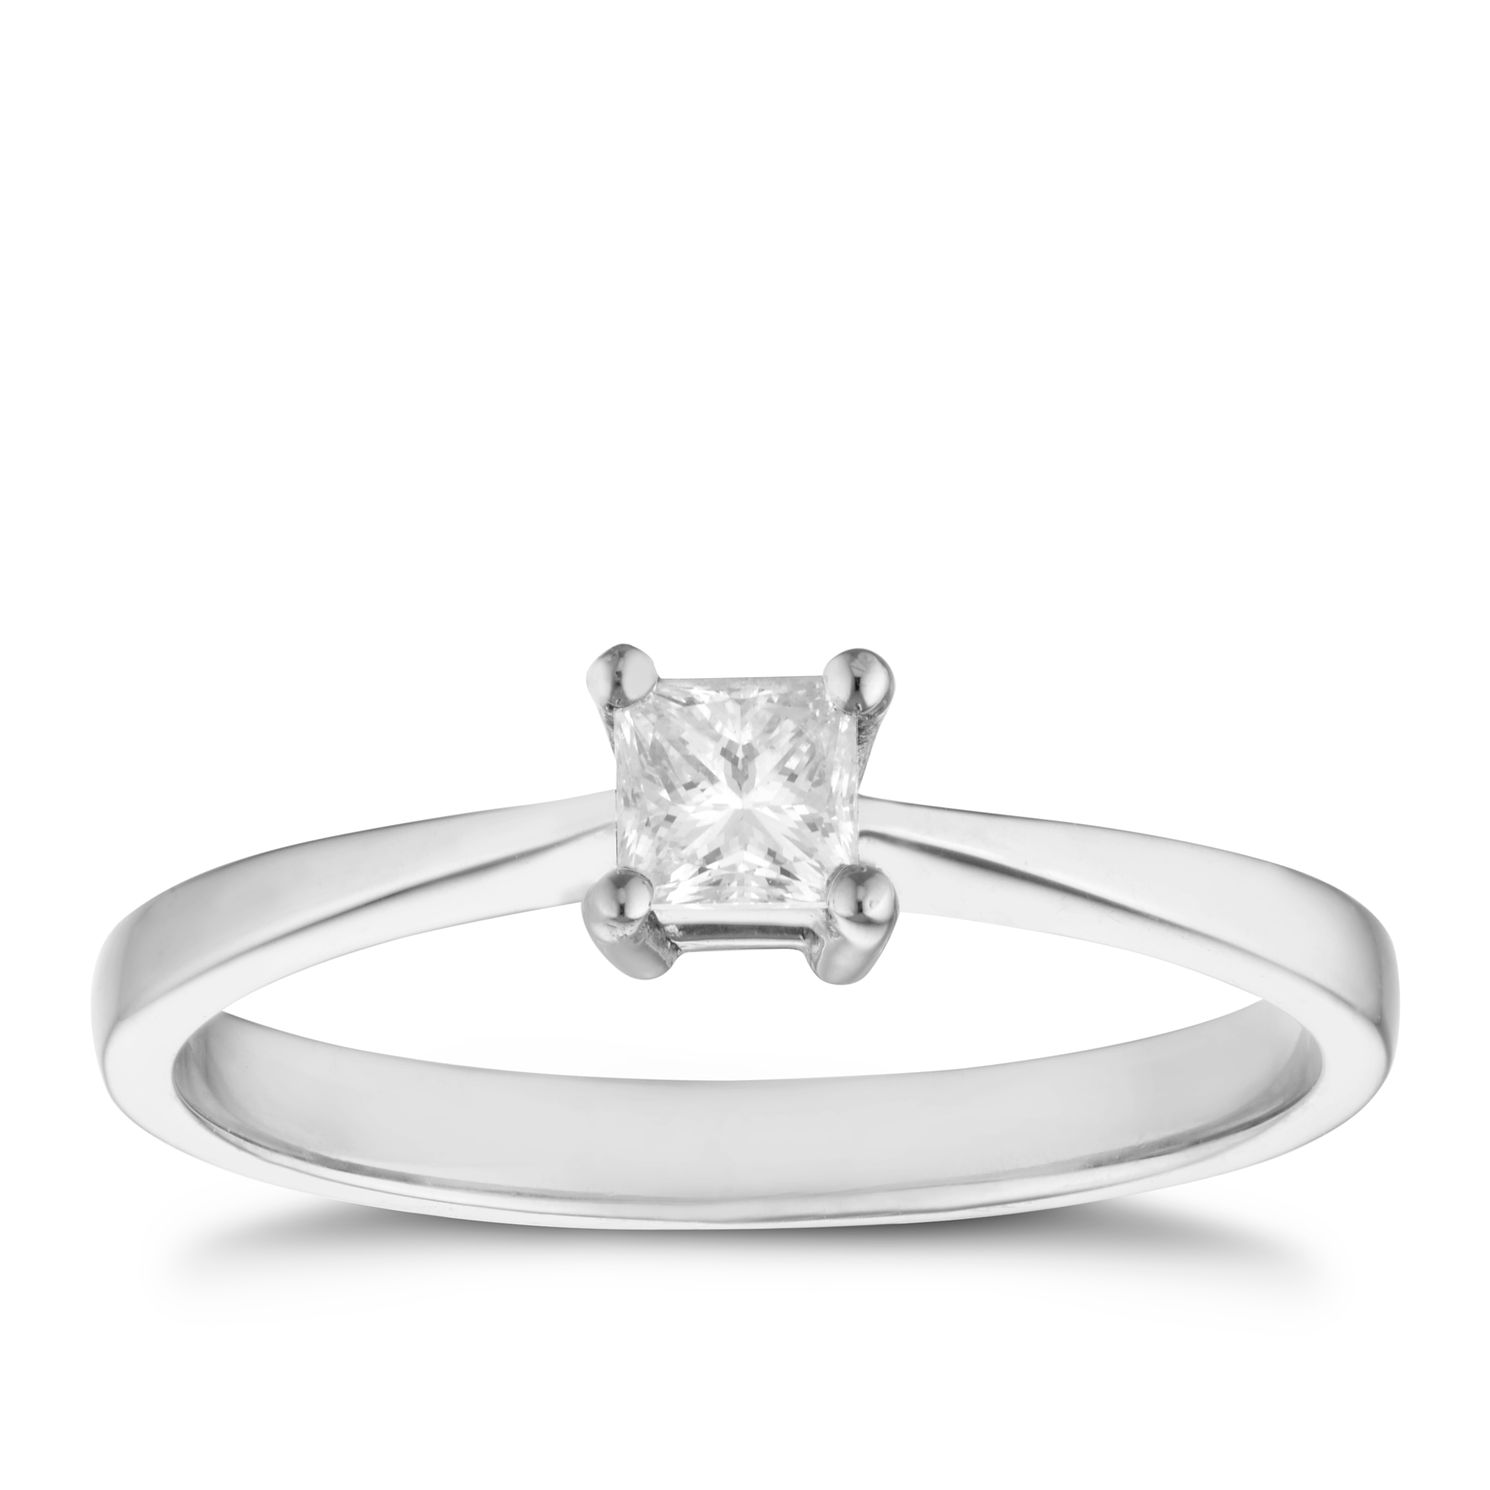 ip ring carat t white com gold engagement diamond solitaire w round platinum walmart